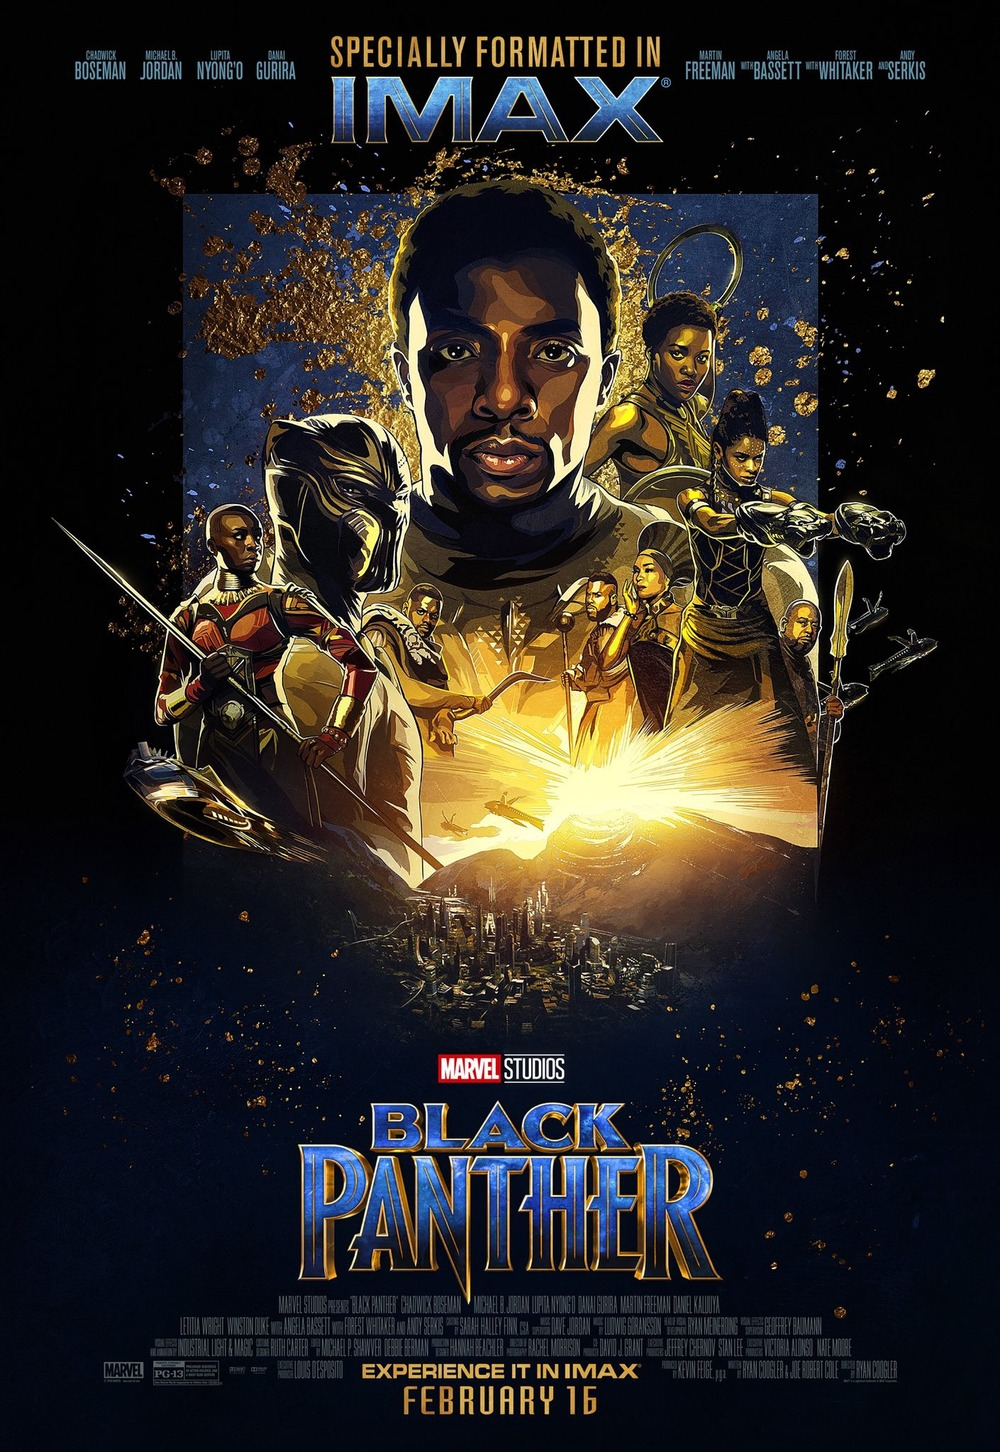 Black Panther Release